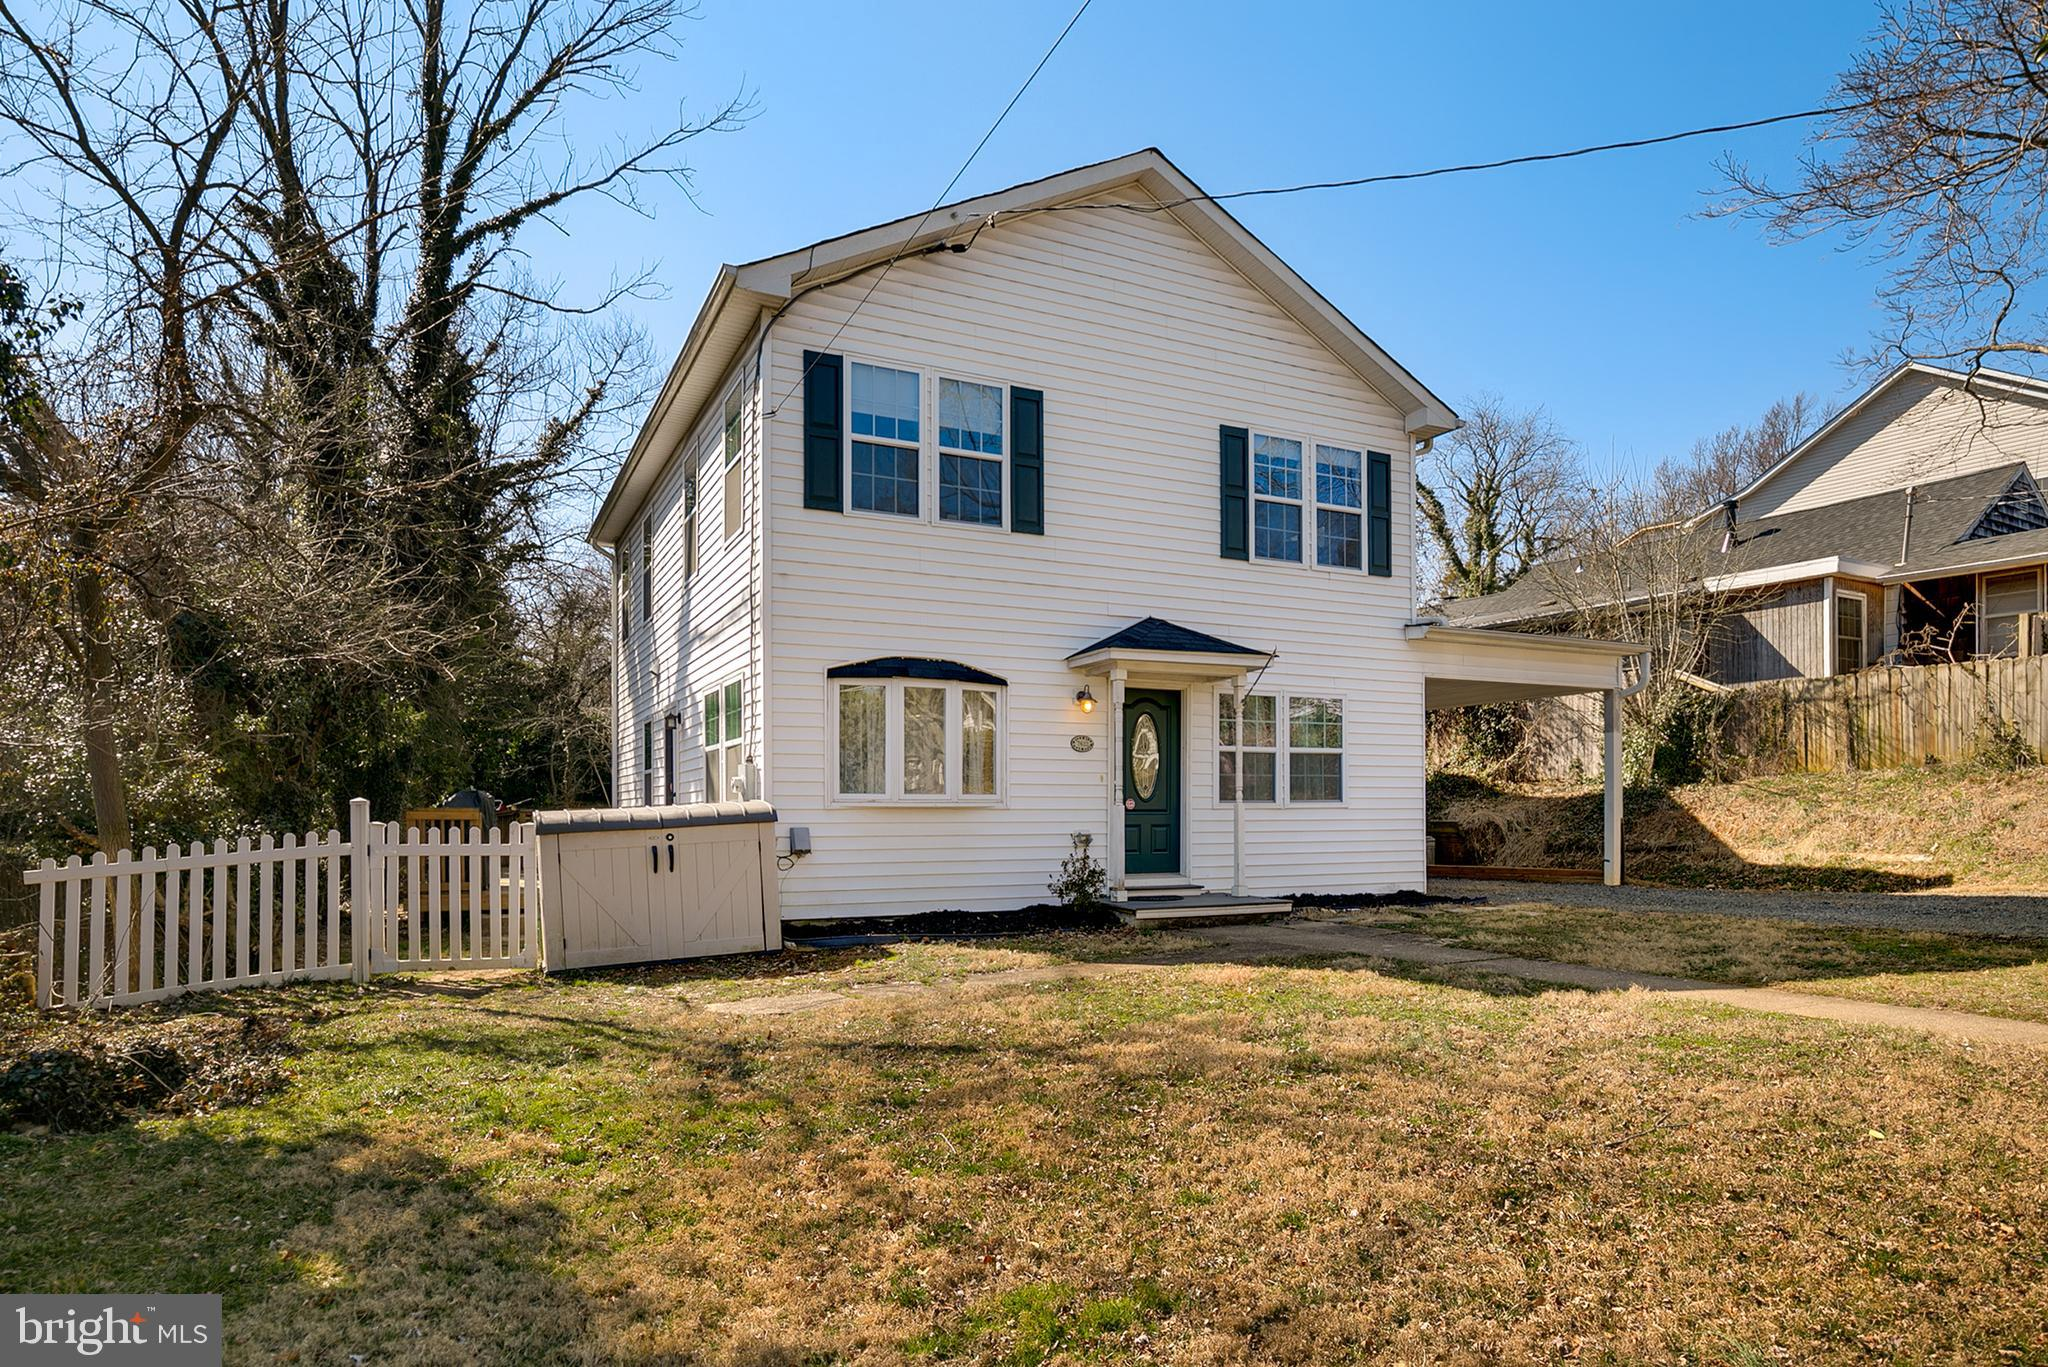 Unique Farm House with 6  bedrooms and 4 bathrooms in the middle of Falls Church. Entering the home you can see and feel the complete open concept of this newly improved home. The main level has appealing hardwood floors throughout as well as attractive crown moldings and ample recessed lighting. The sunfilled kitchen features modern stainless steel appliances, traditional cabinetry, sparkling granite countertops, and eat-in space. The cozy family room is perfect for entertaining.  The master bedroom is on the main level complete with en suite bathroom as well another bedroom and complete updated modern bathroom. Upstairs there are 4 additional roomy bedrooms and 2 more full bathrooms. You will always have enough bathrooms in this home. The home is complete with a white picket fence. This home is also located within 5 minutes of 2 metro stations. Conviently located to athletic fields as well. Not to mention there are many shopping and dining options nearby. There have been tons of improvements done in this home. Please come see for yourself.